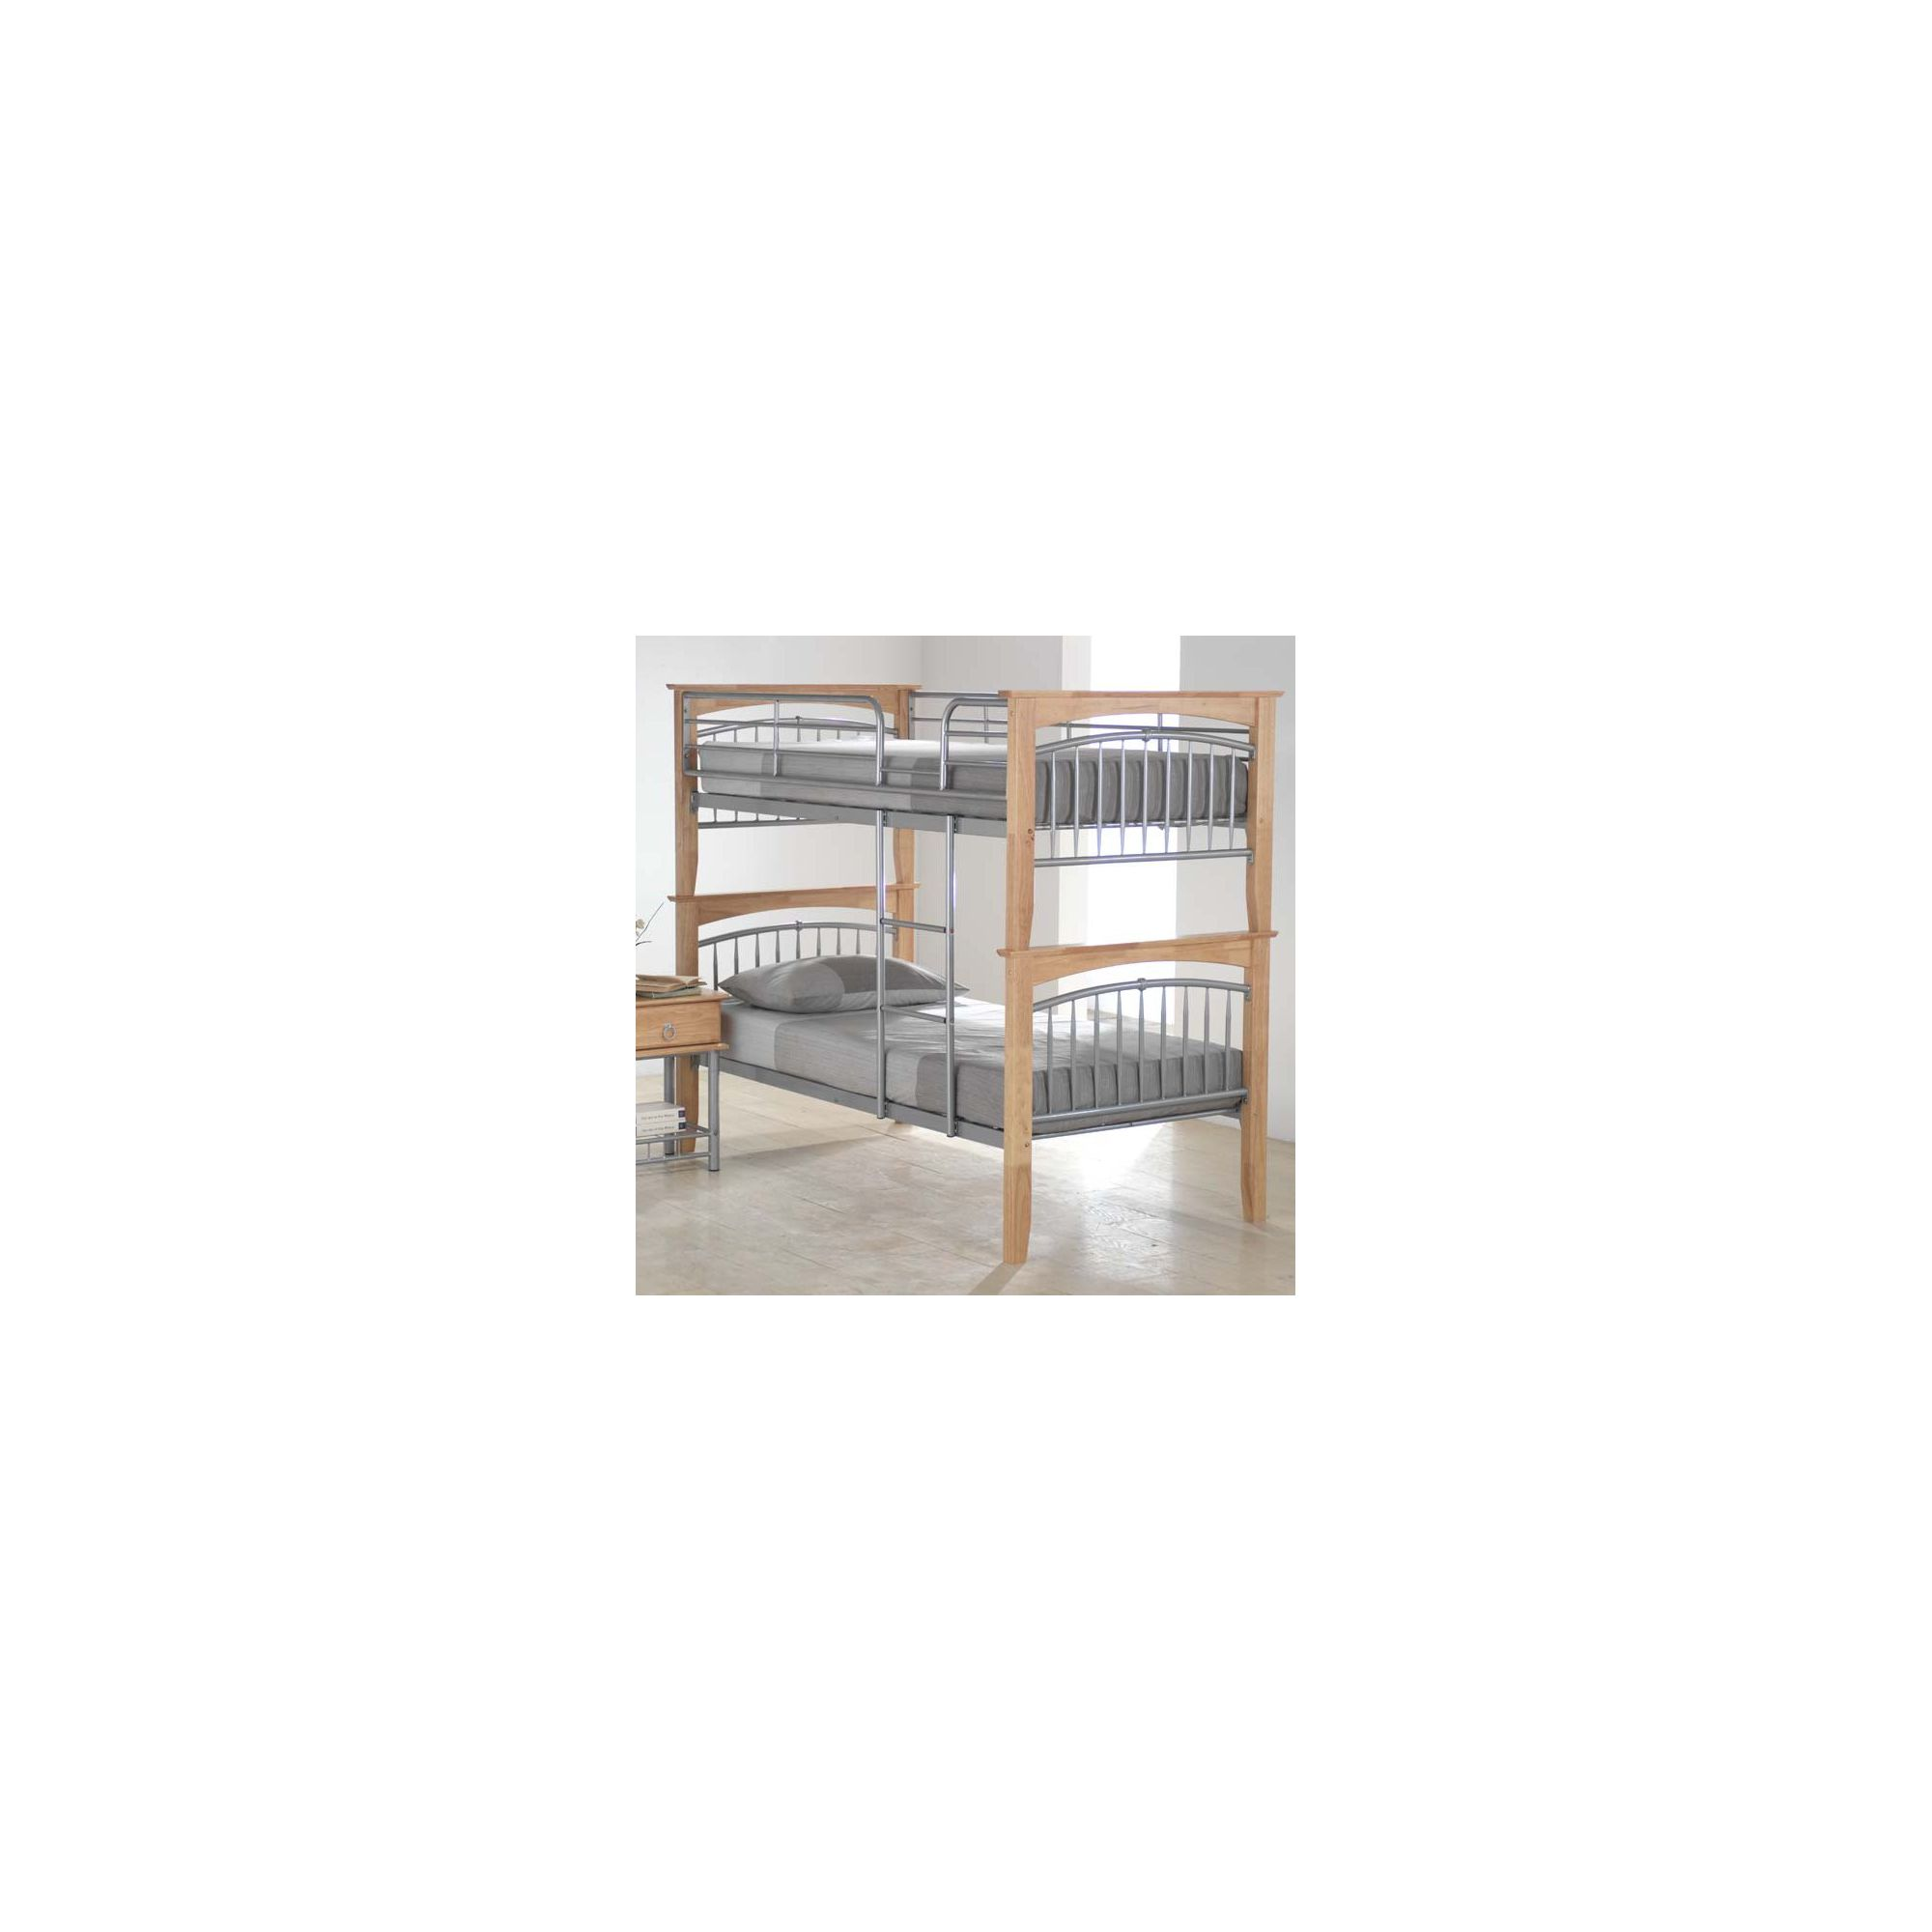 Ideal Furniture Euro Bunk Bed - Beech and Silver at Tesco Direct